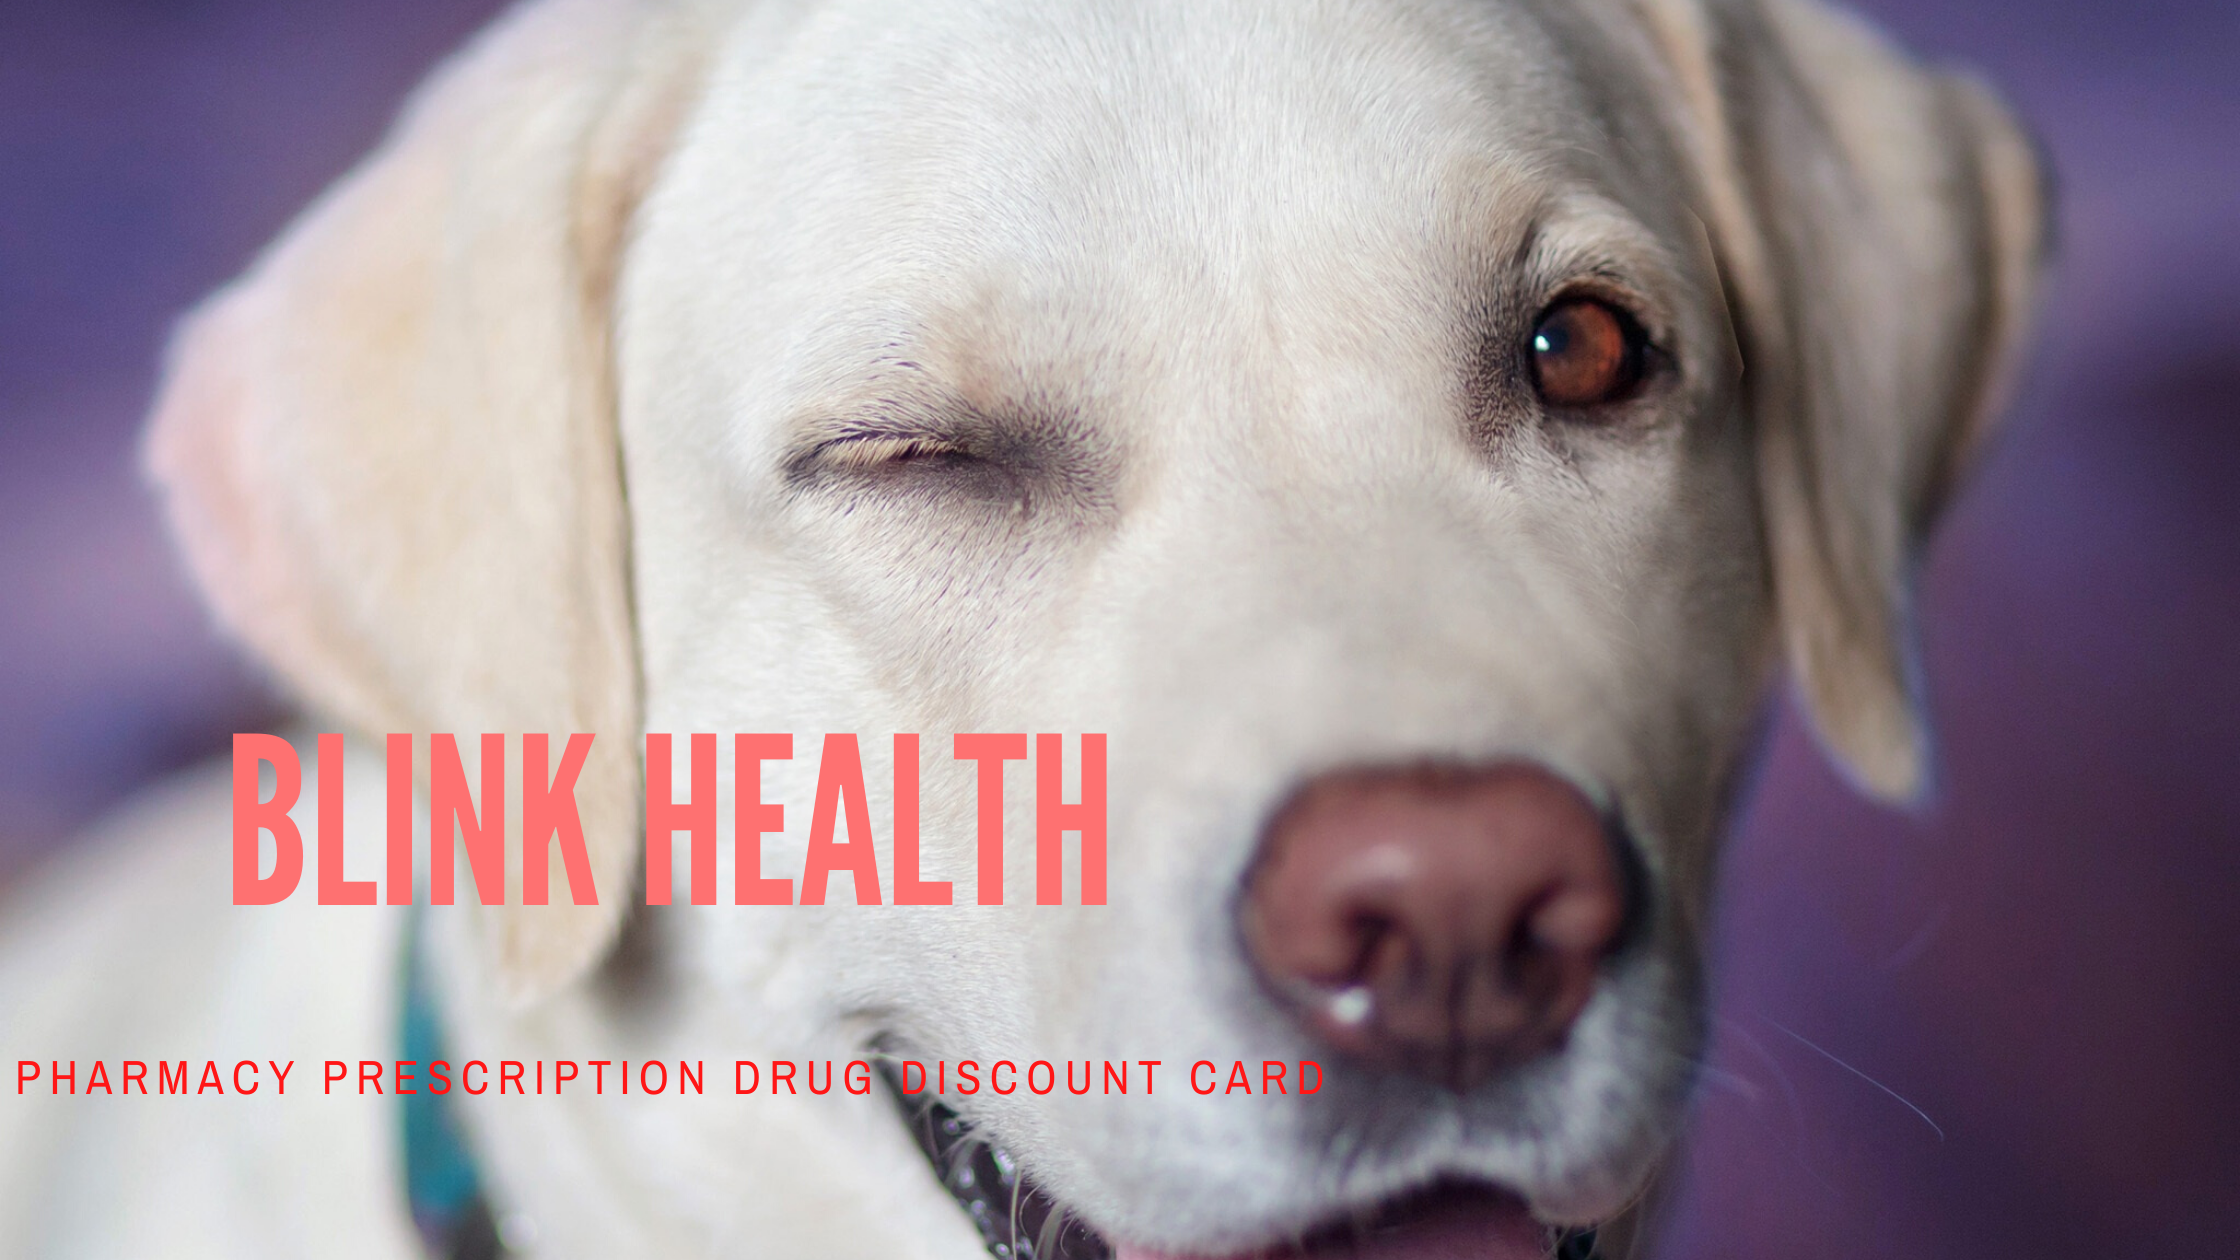 Blink Health pharmacy prescription discount card